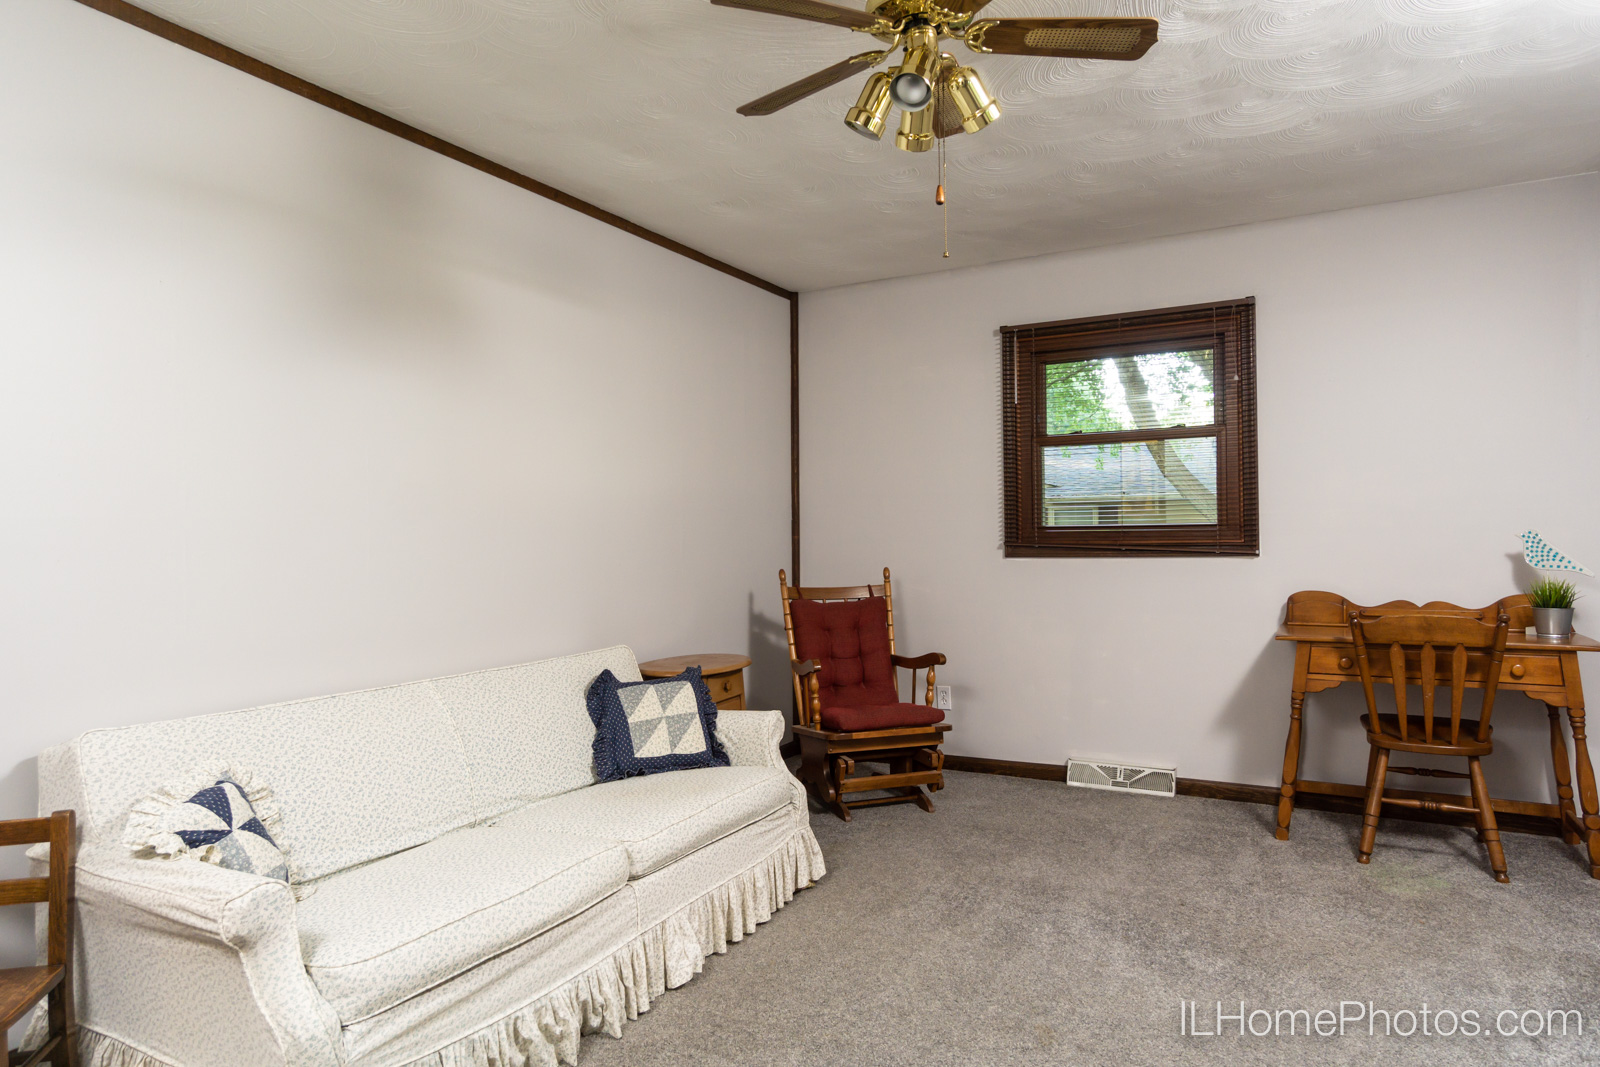 Interior bedroom photograph for real estate in Sherman, IL :: Illinois Home Photography by Michael Gowin, Lincoln, IL